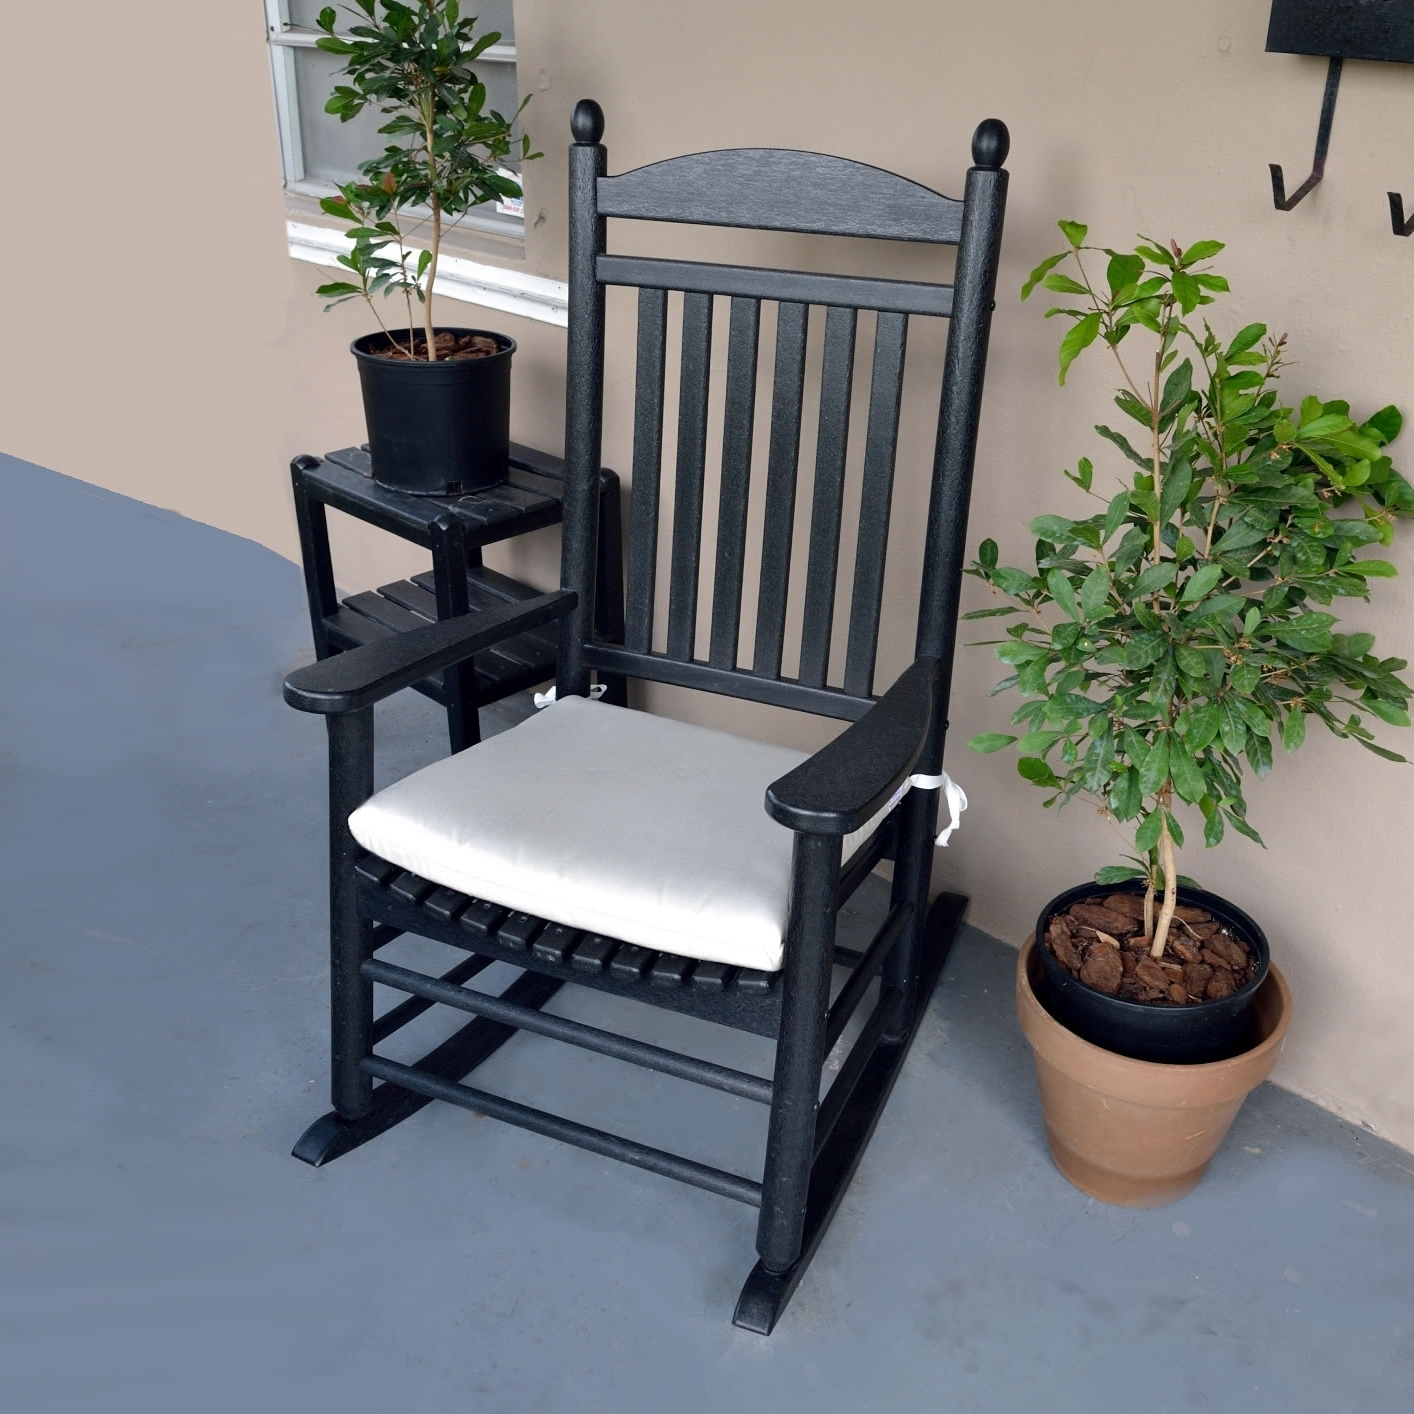 Rocking Chair Cushions For Outdoor Throughout Latest Polywood Rocking Chair Seat Cushions – Outdoor Cushions – Accessories (View 16 of 20)